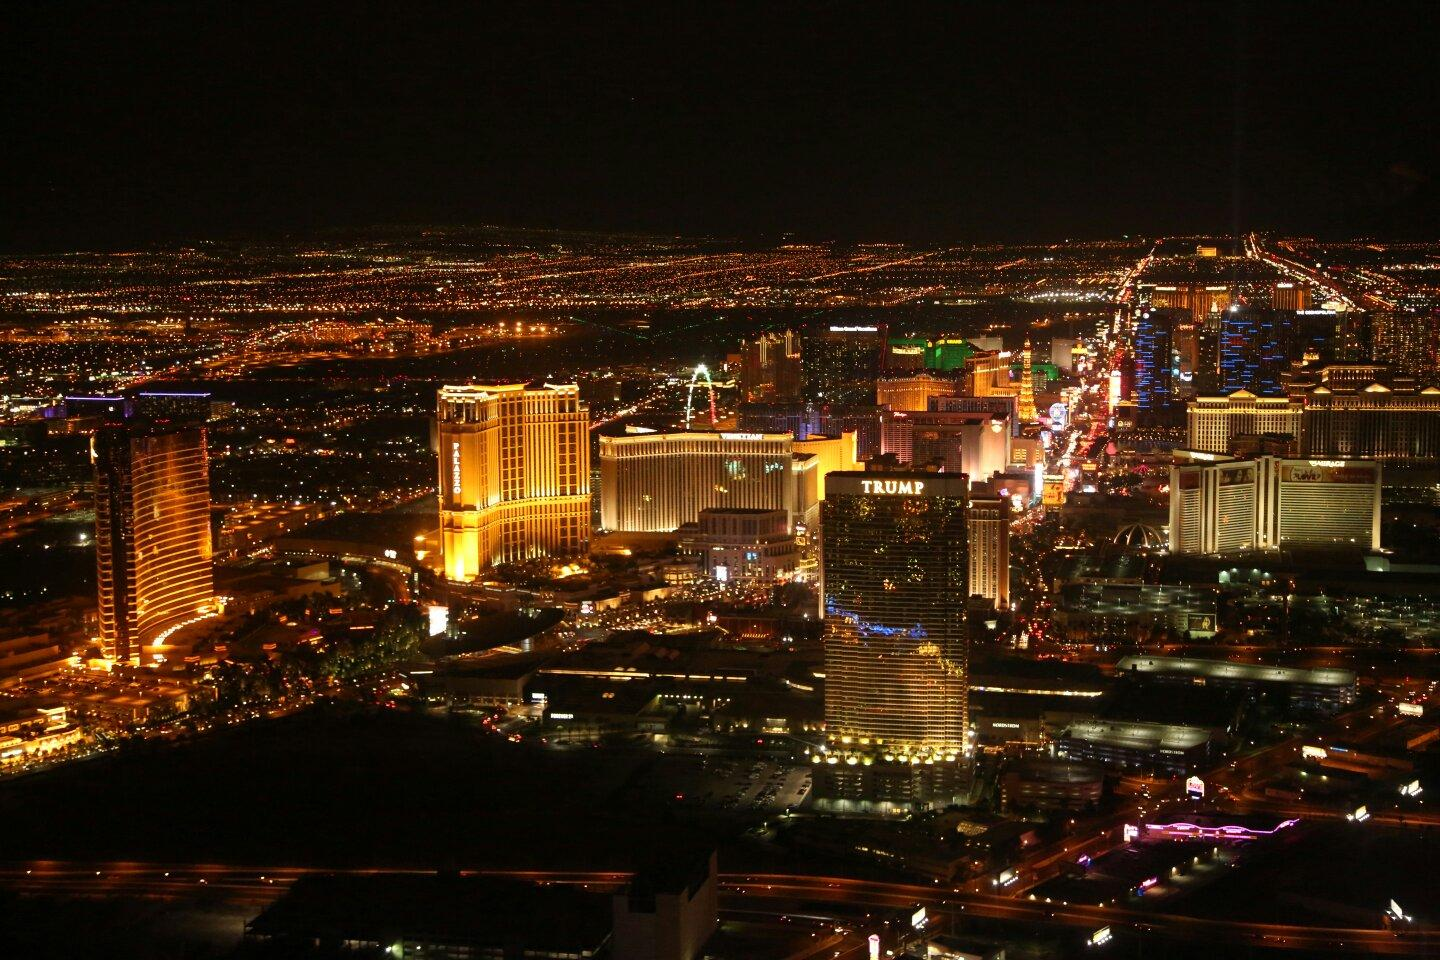 Vegas at night from helicopter